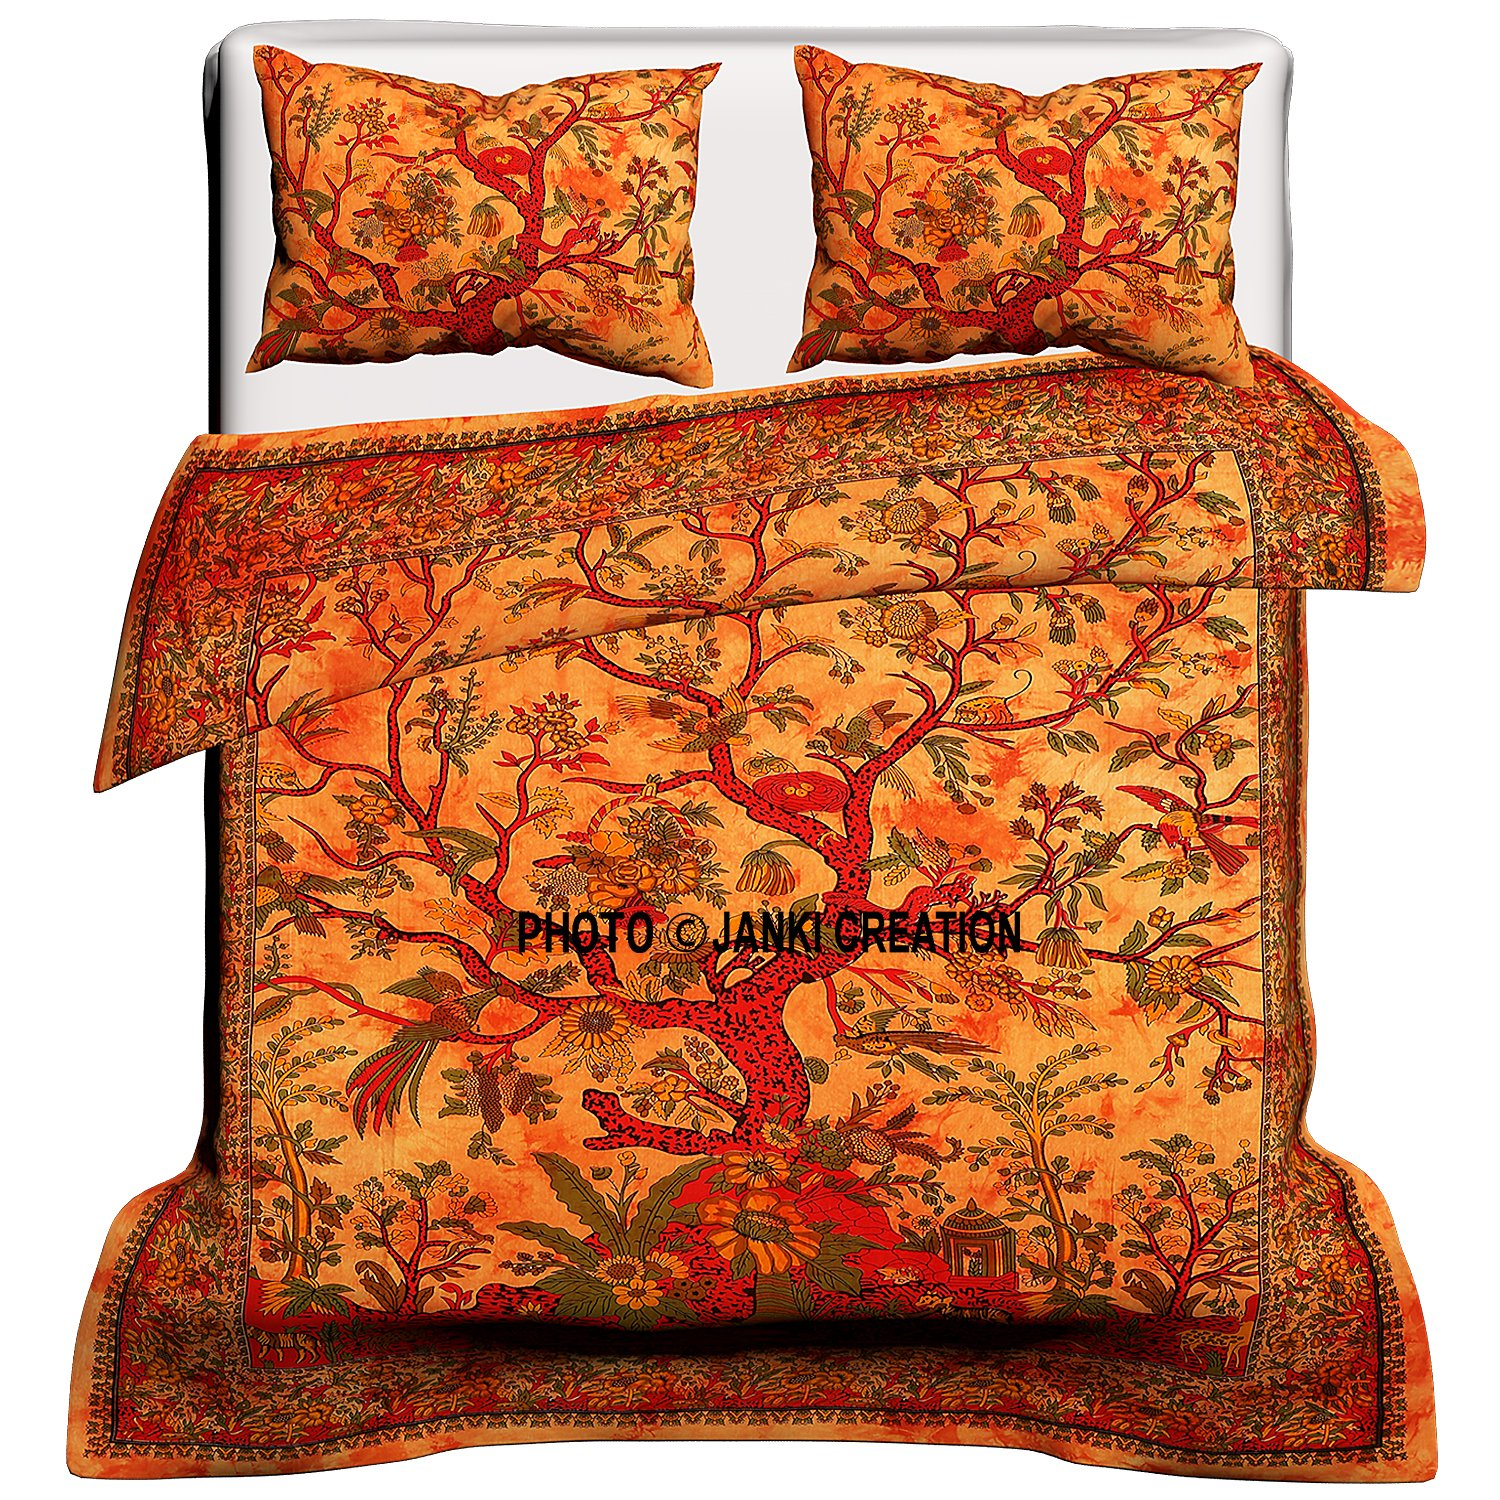 Tree Of Life Cotton Queen Duvet Cover Quilt Cover Bohemian Hippie Bedspread Quilt Handmade Duvet Cover With Pilow Cover (Orange) 80X82 Inches By Janki Creation